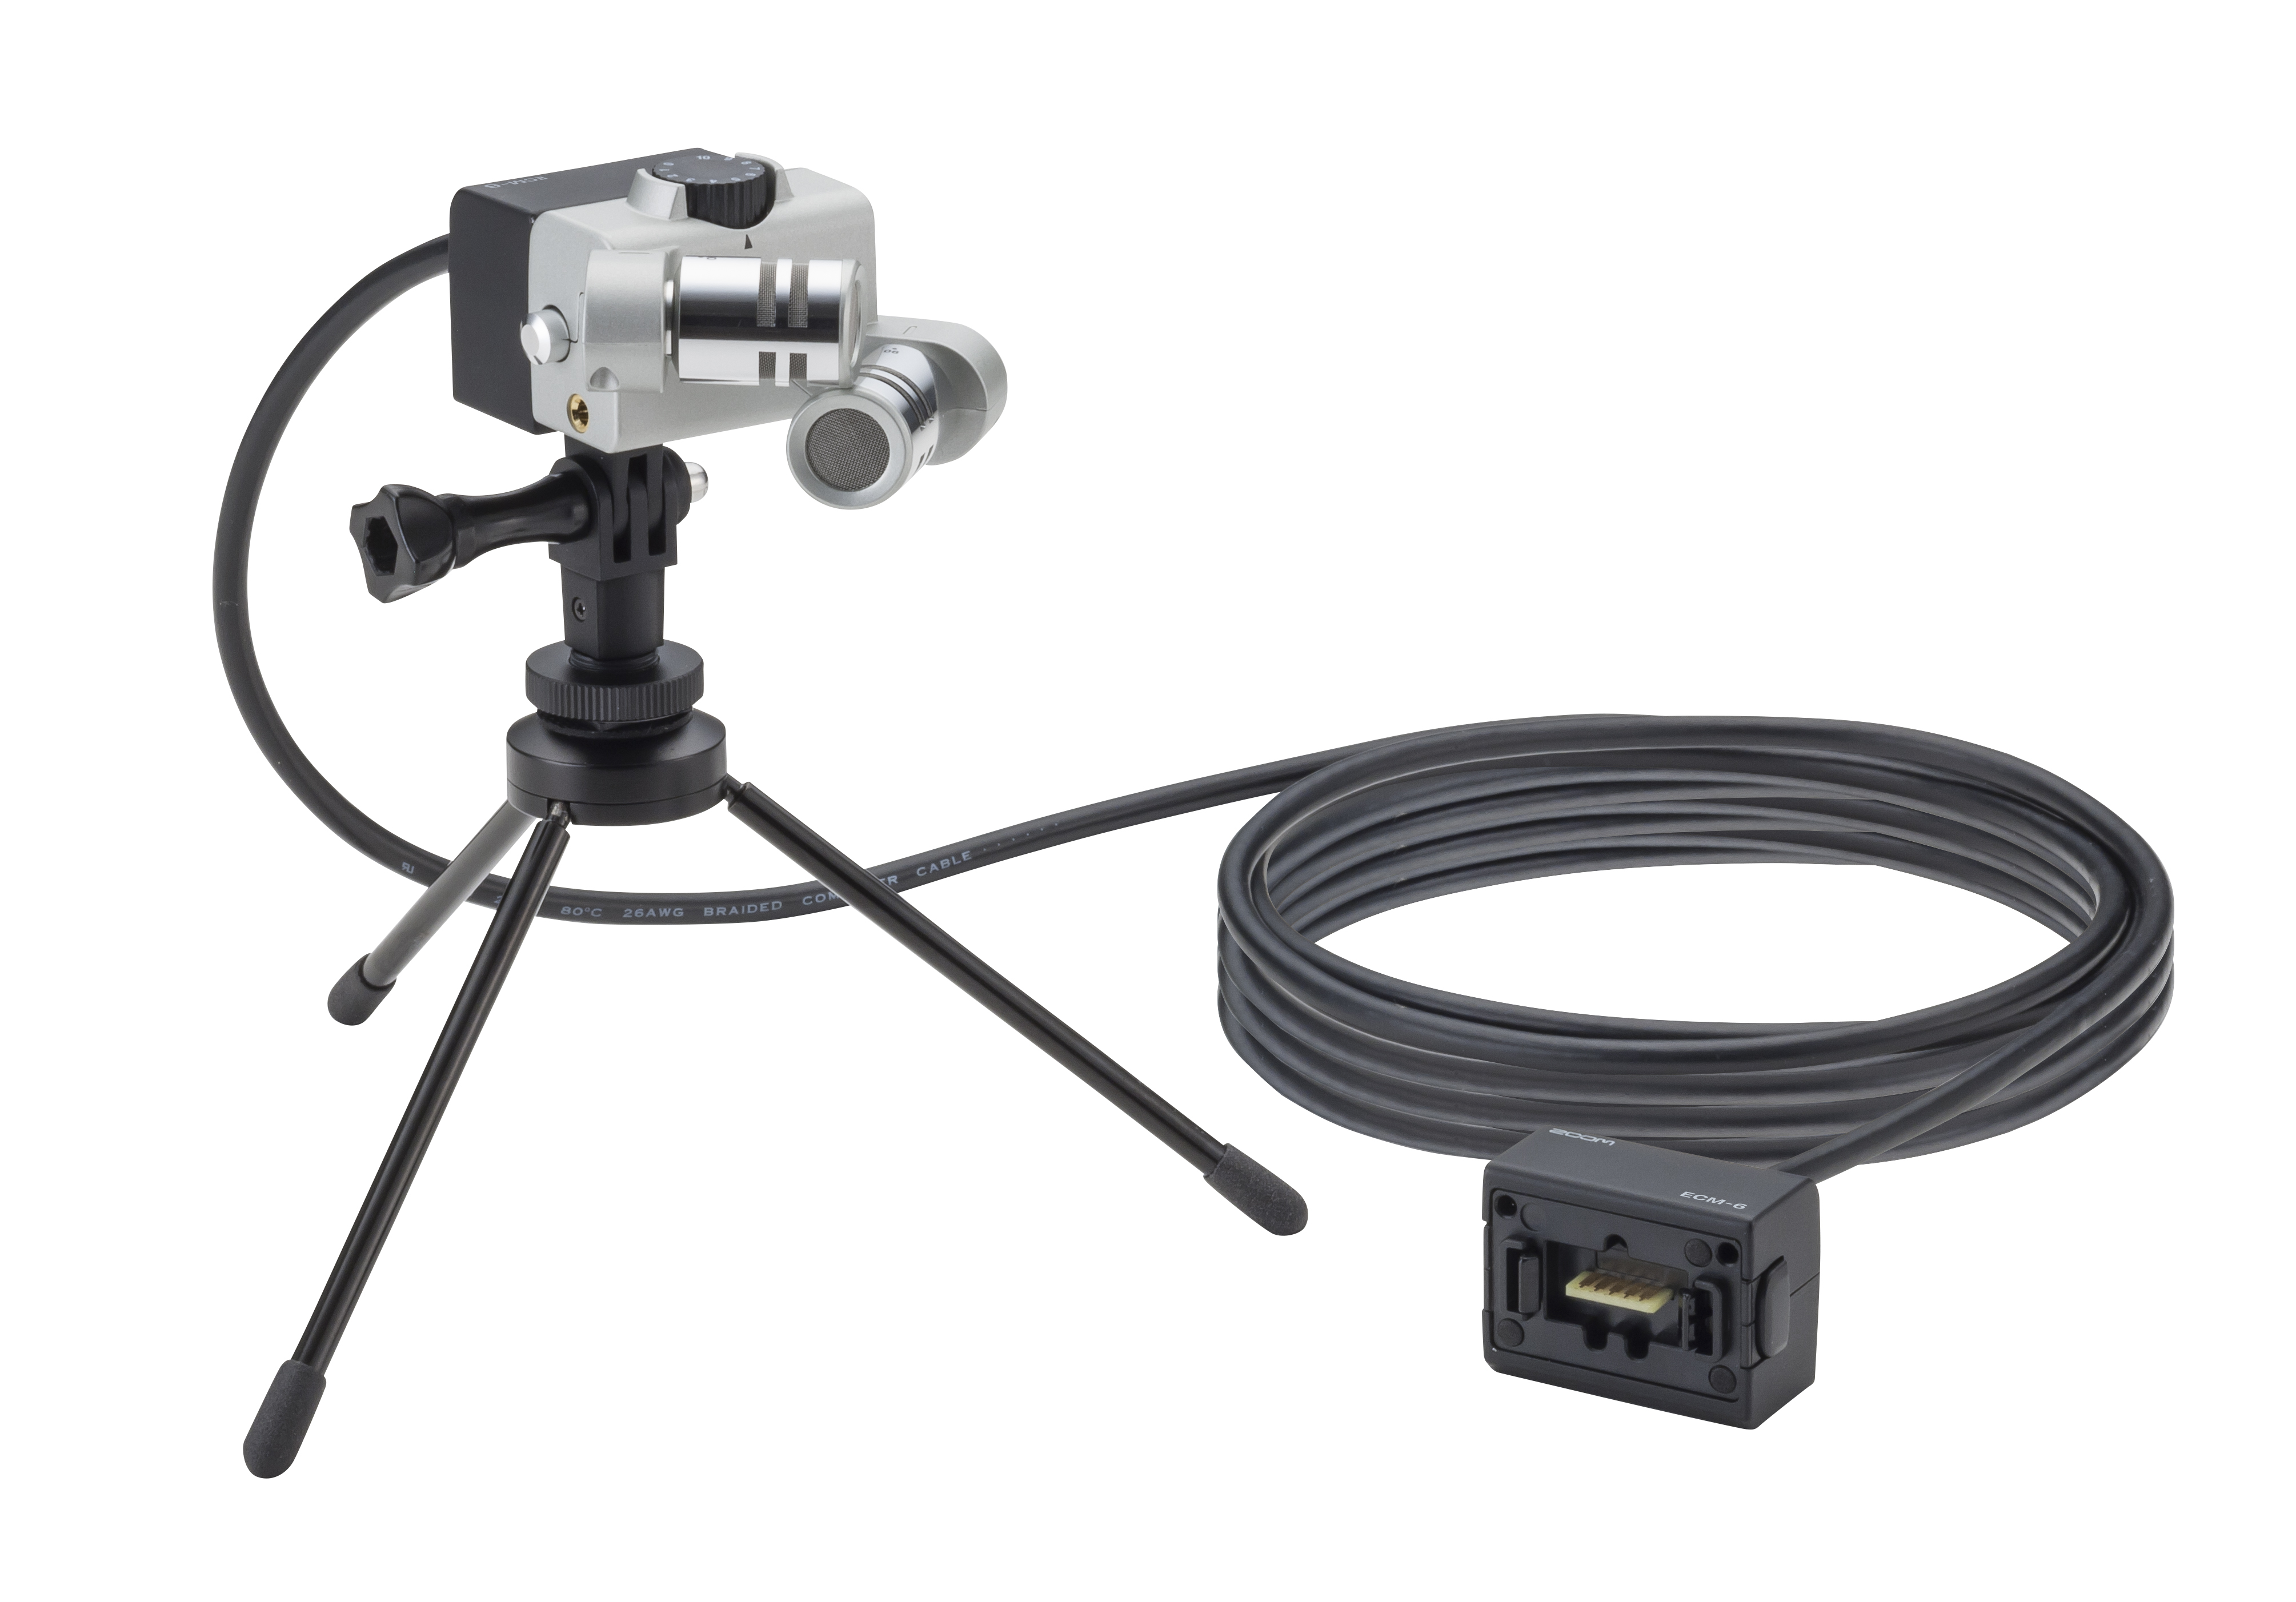 Ecm 6 Extension Cable For Zoom Microphone Capsules